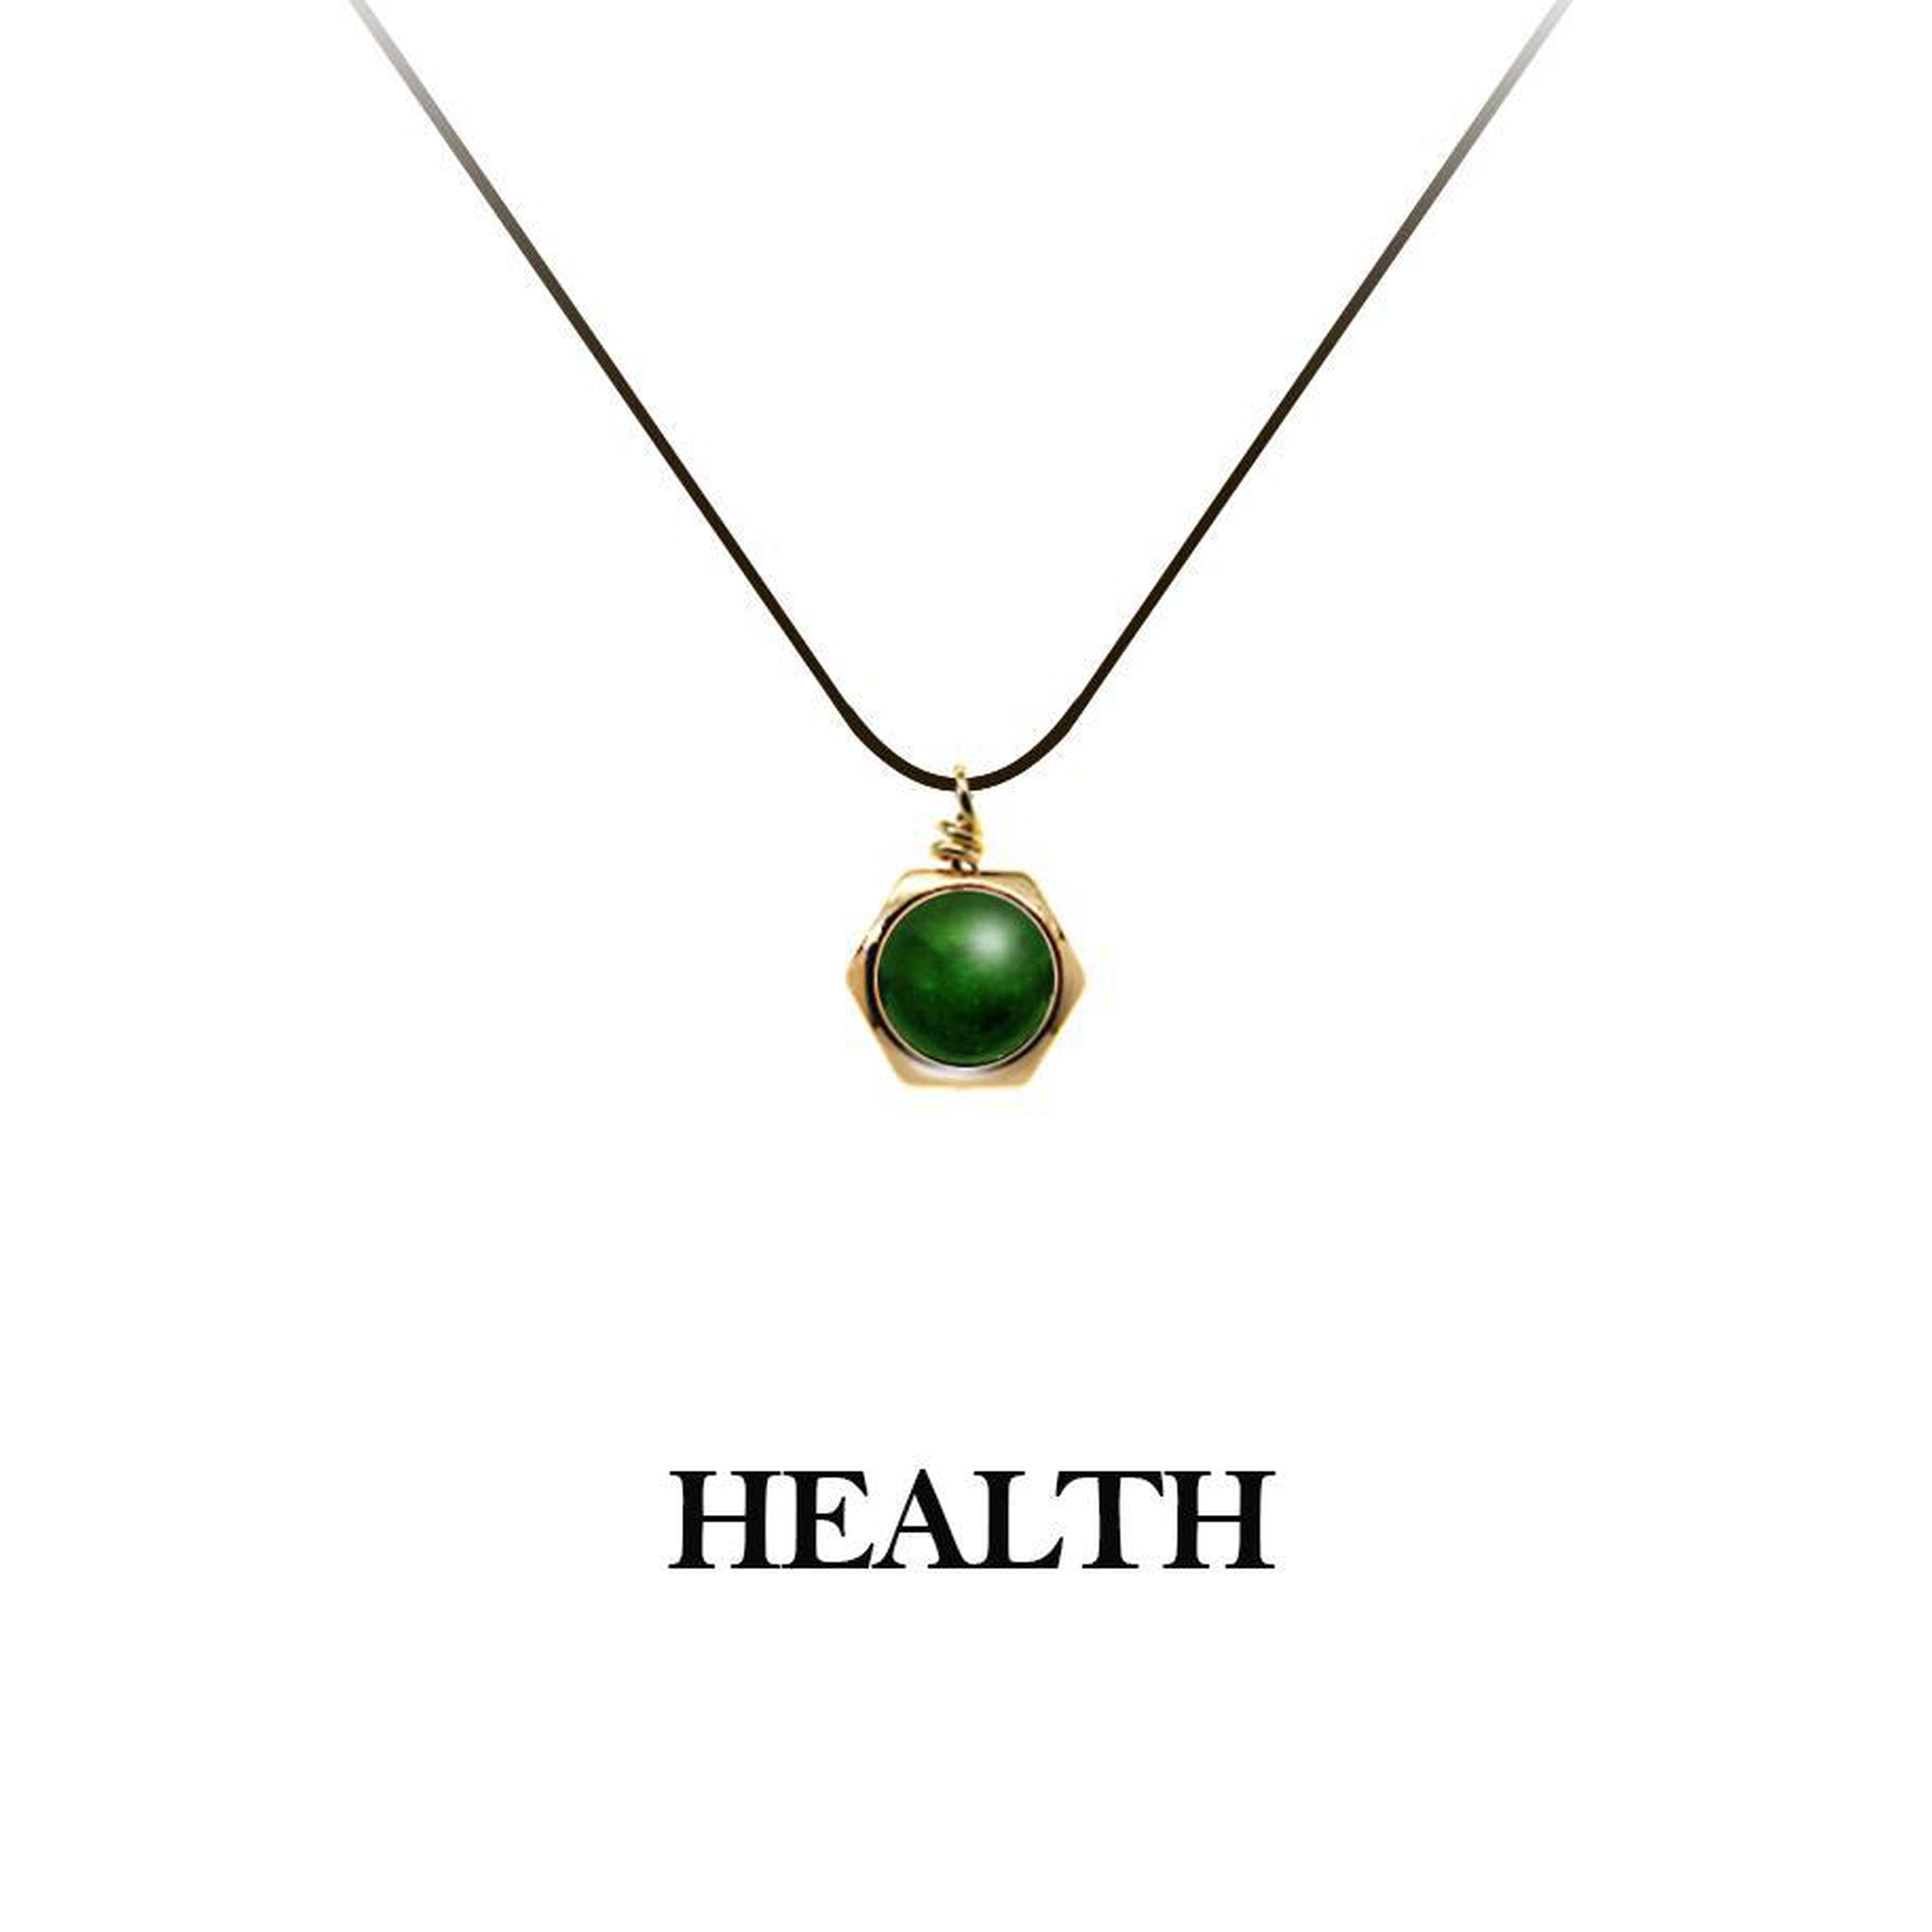 [LALA] Health Necklace-LALA Necklace-La Meno